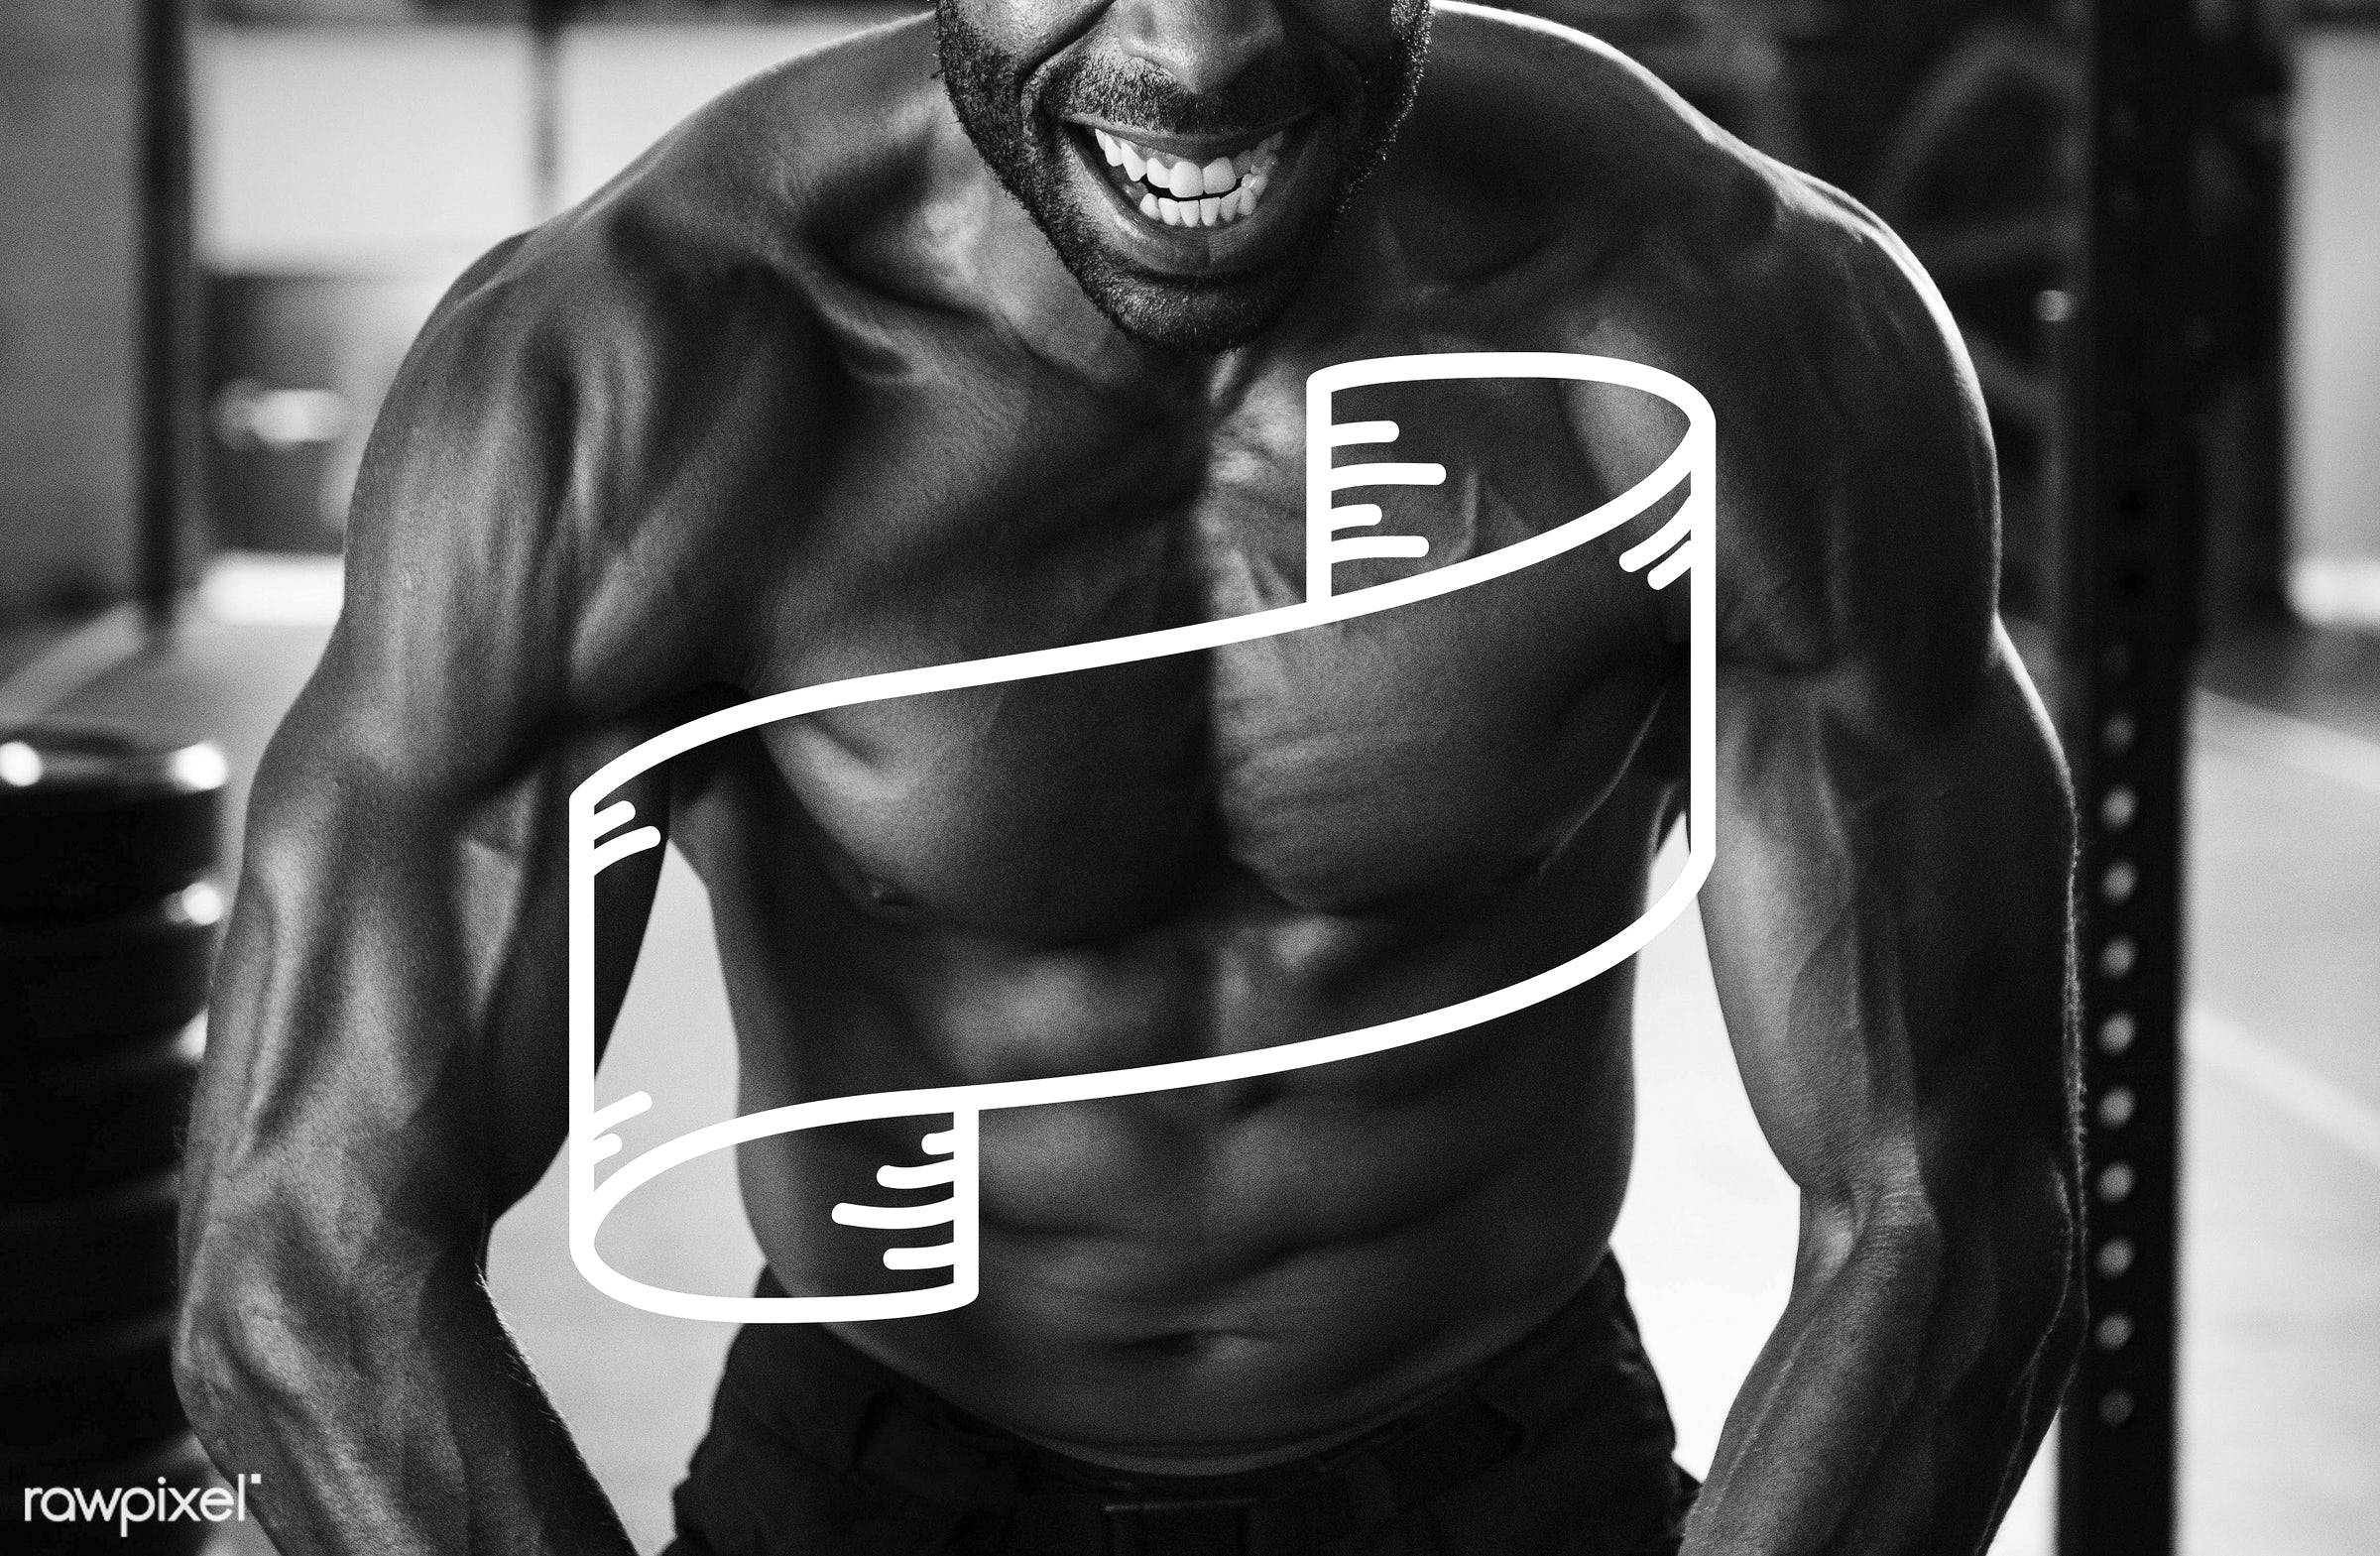 abs, adult, african descent, arms, badge, banner, biceps, blank, body, bodybuilder, copy space, exercise, fitness, label,...